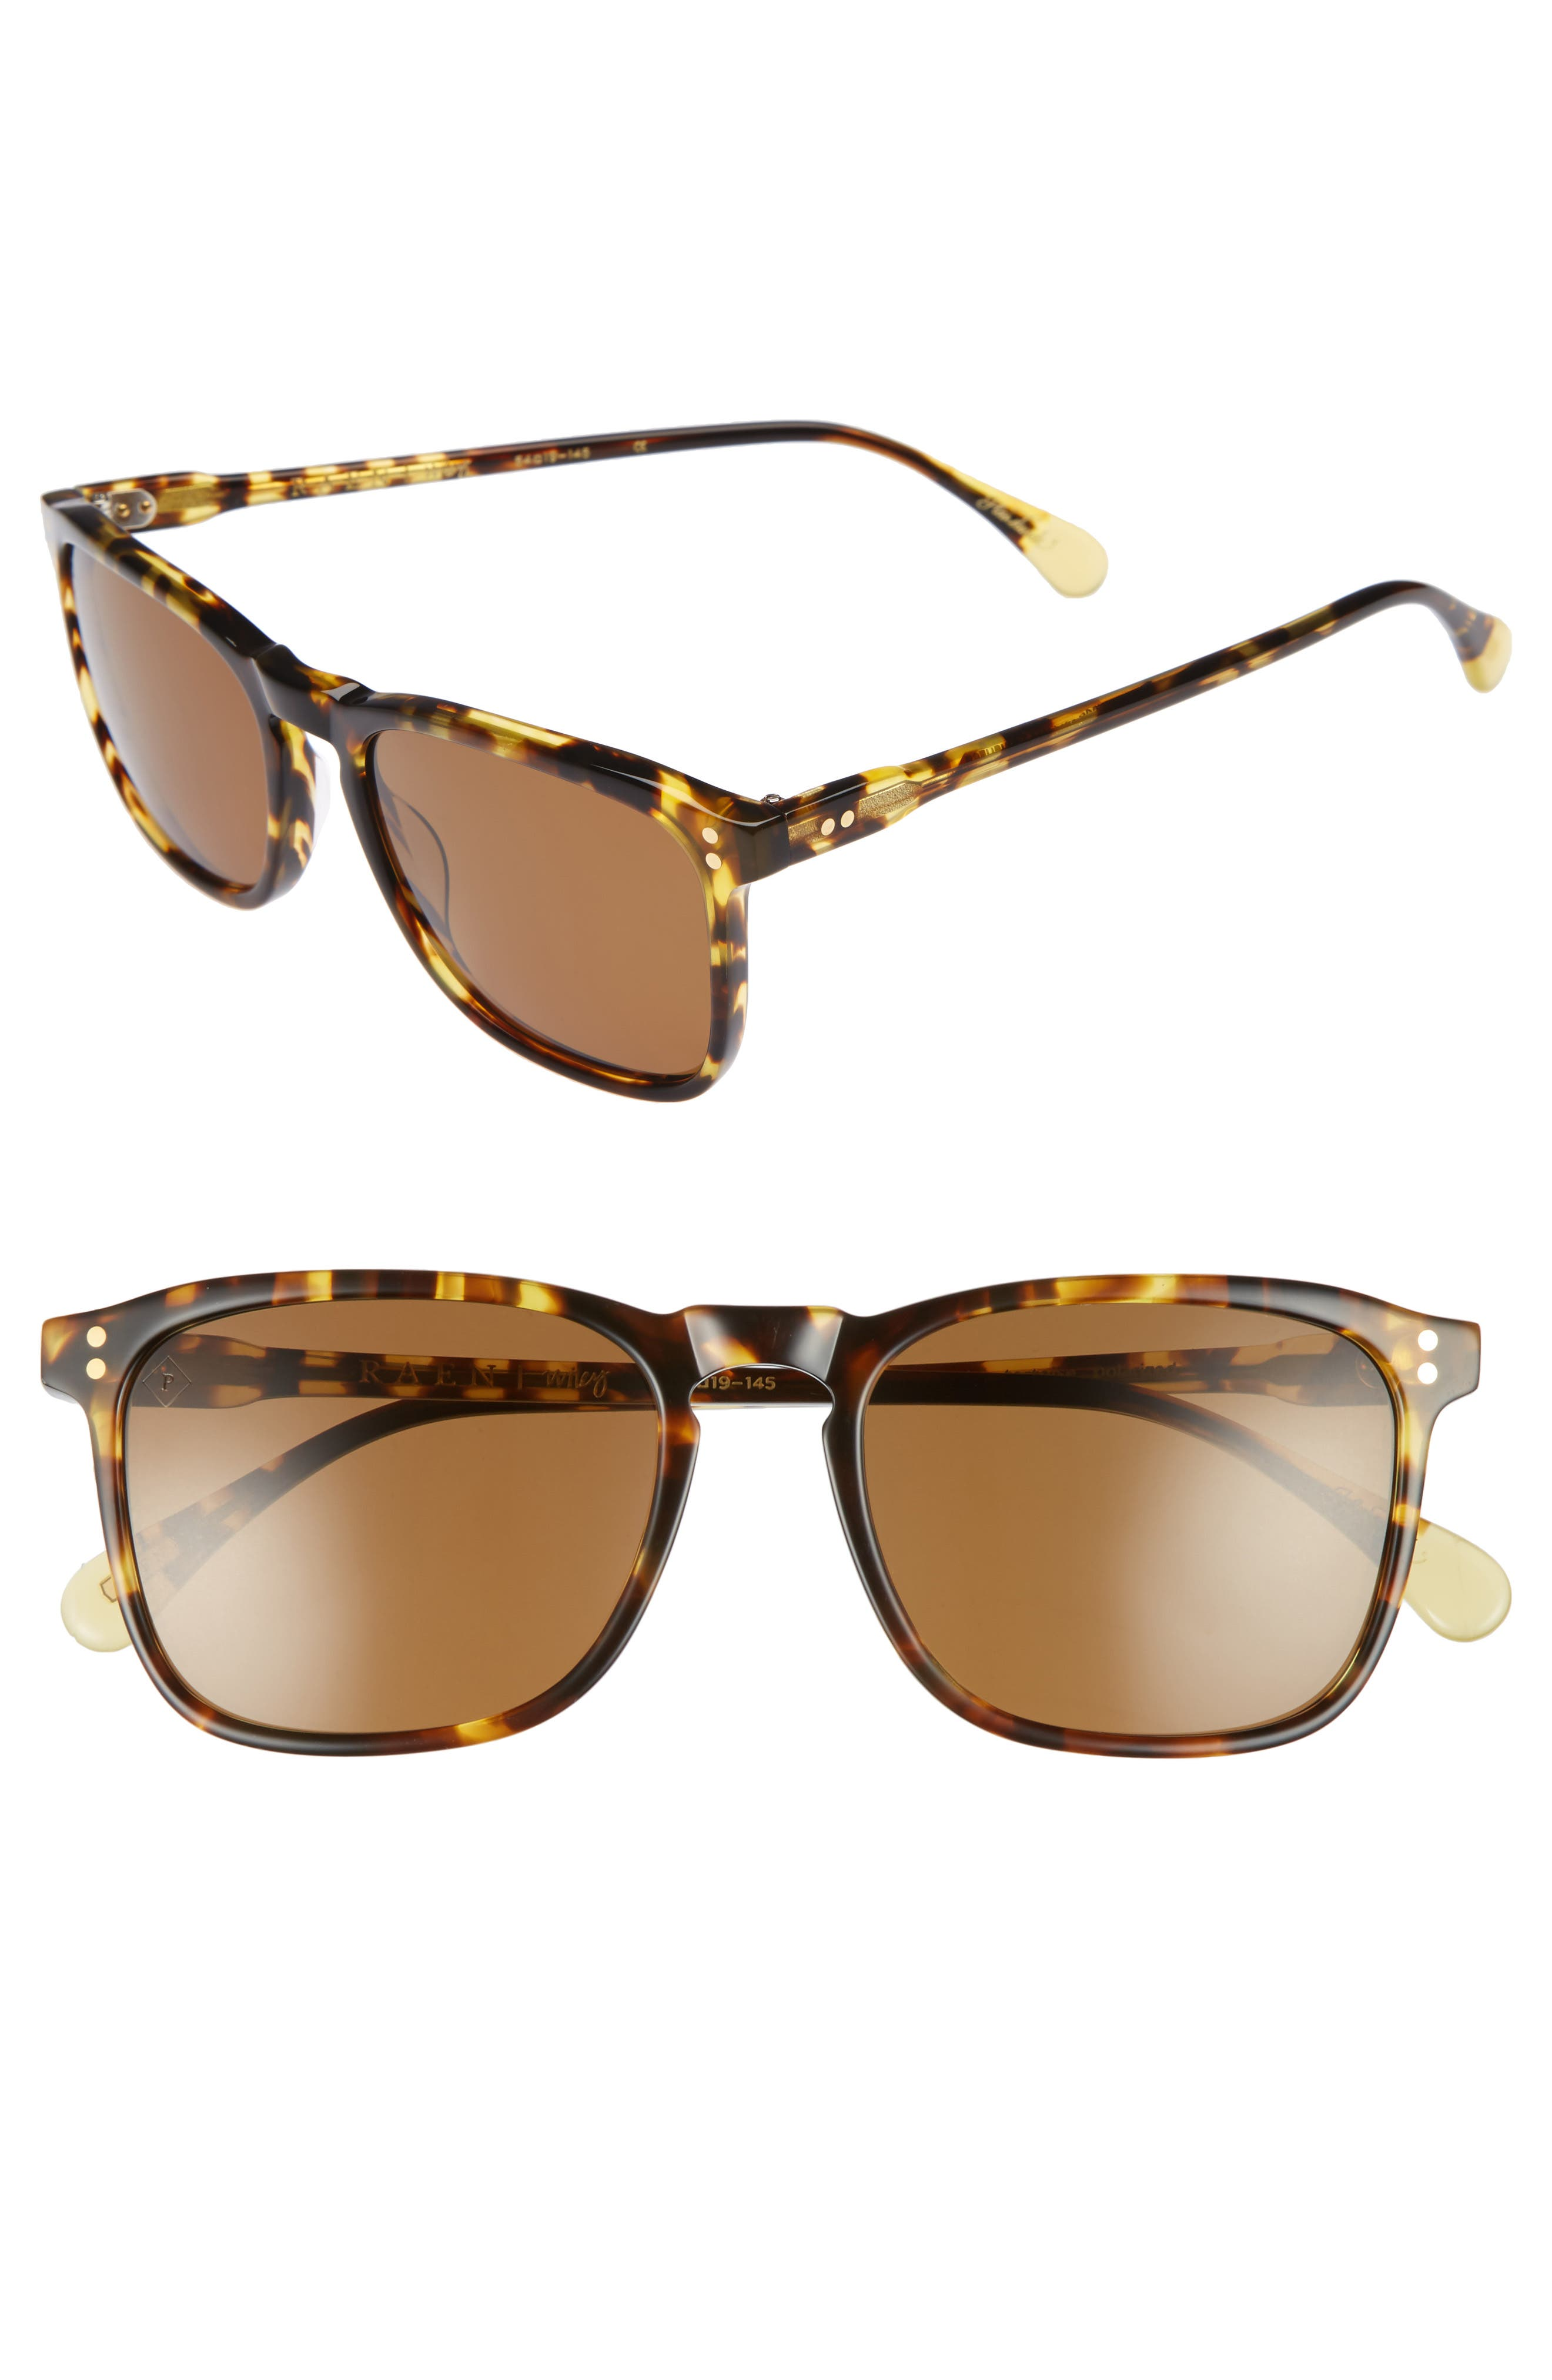 Wiley 54mm Polarized Sunglasses,                             Main thumbnail 1, color,                             Tokyo Tortoise/ Brown